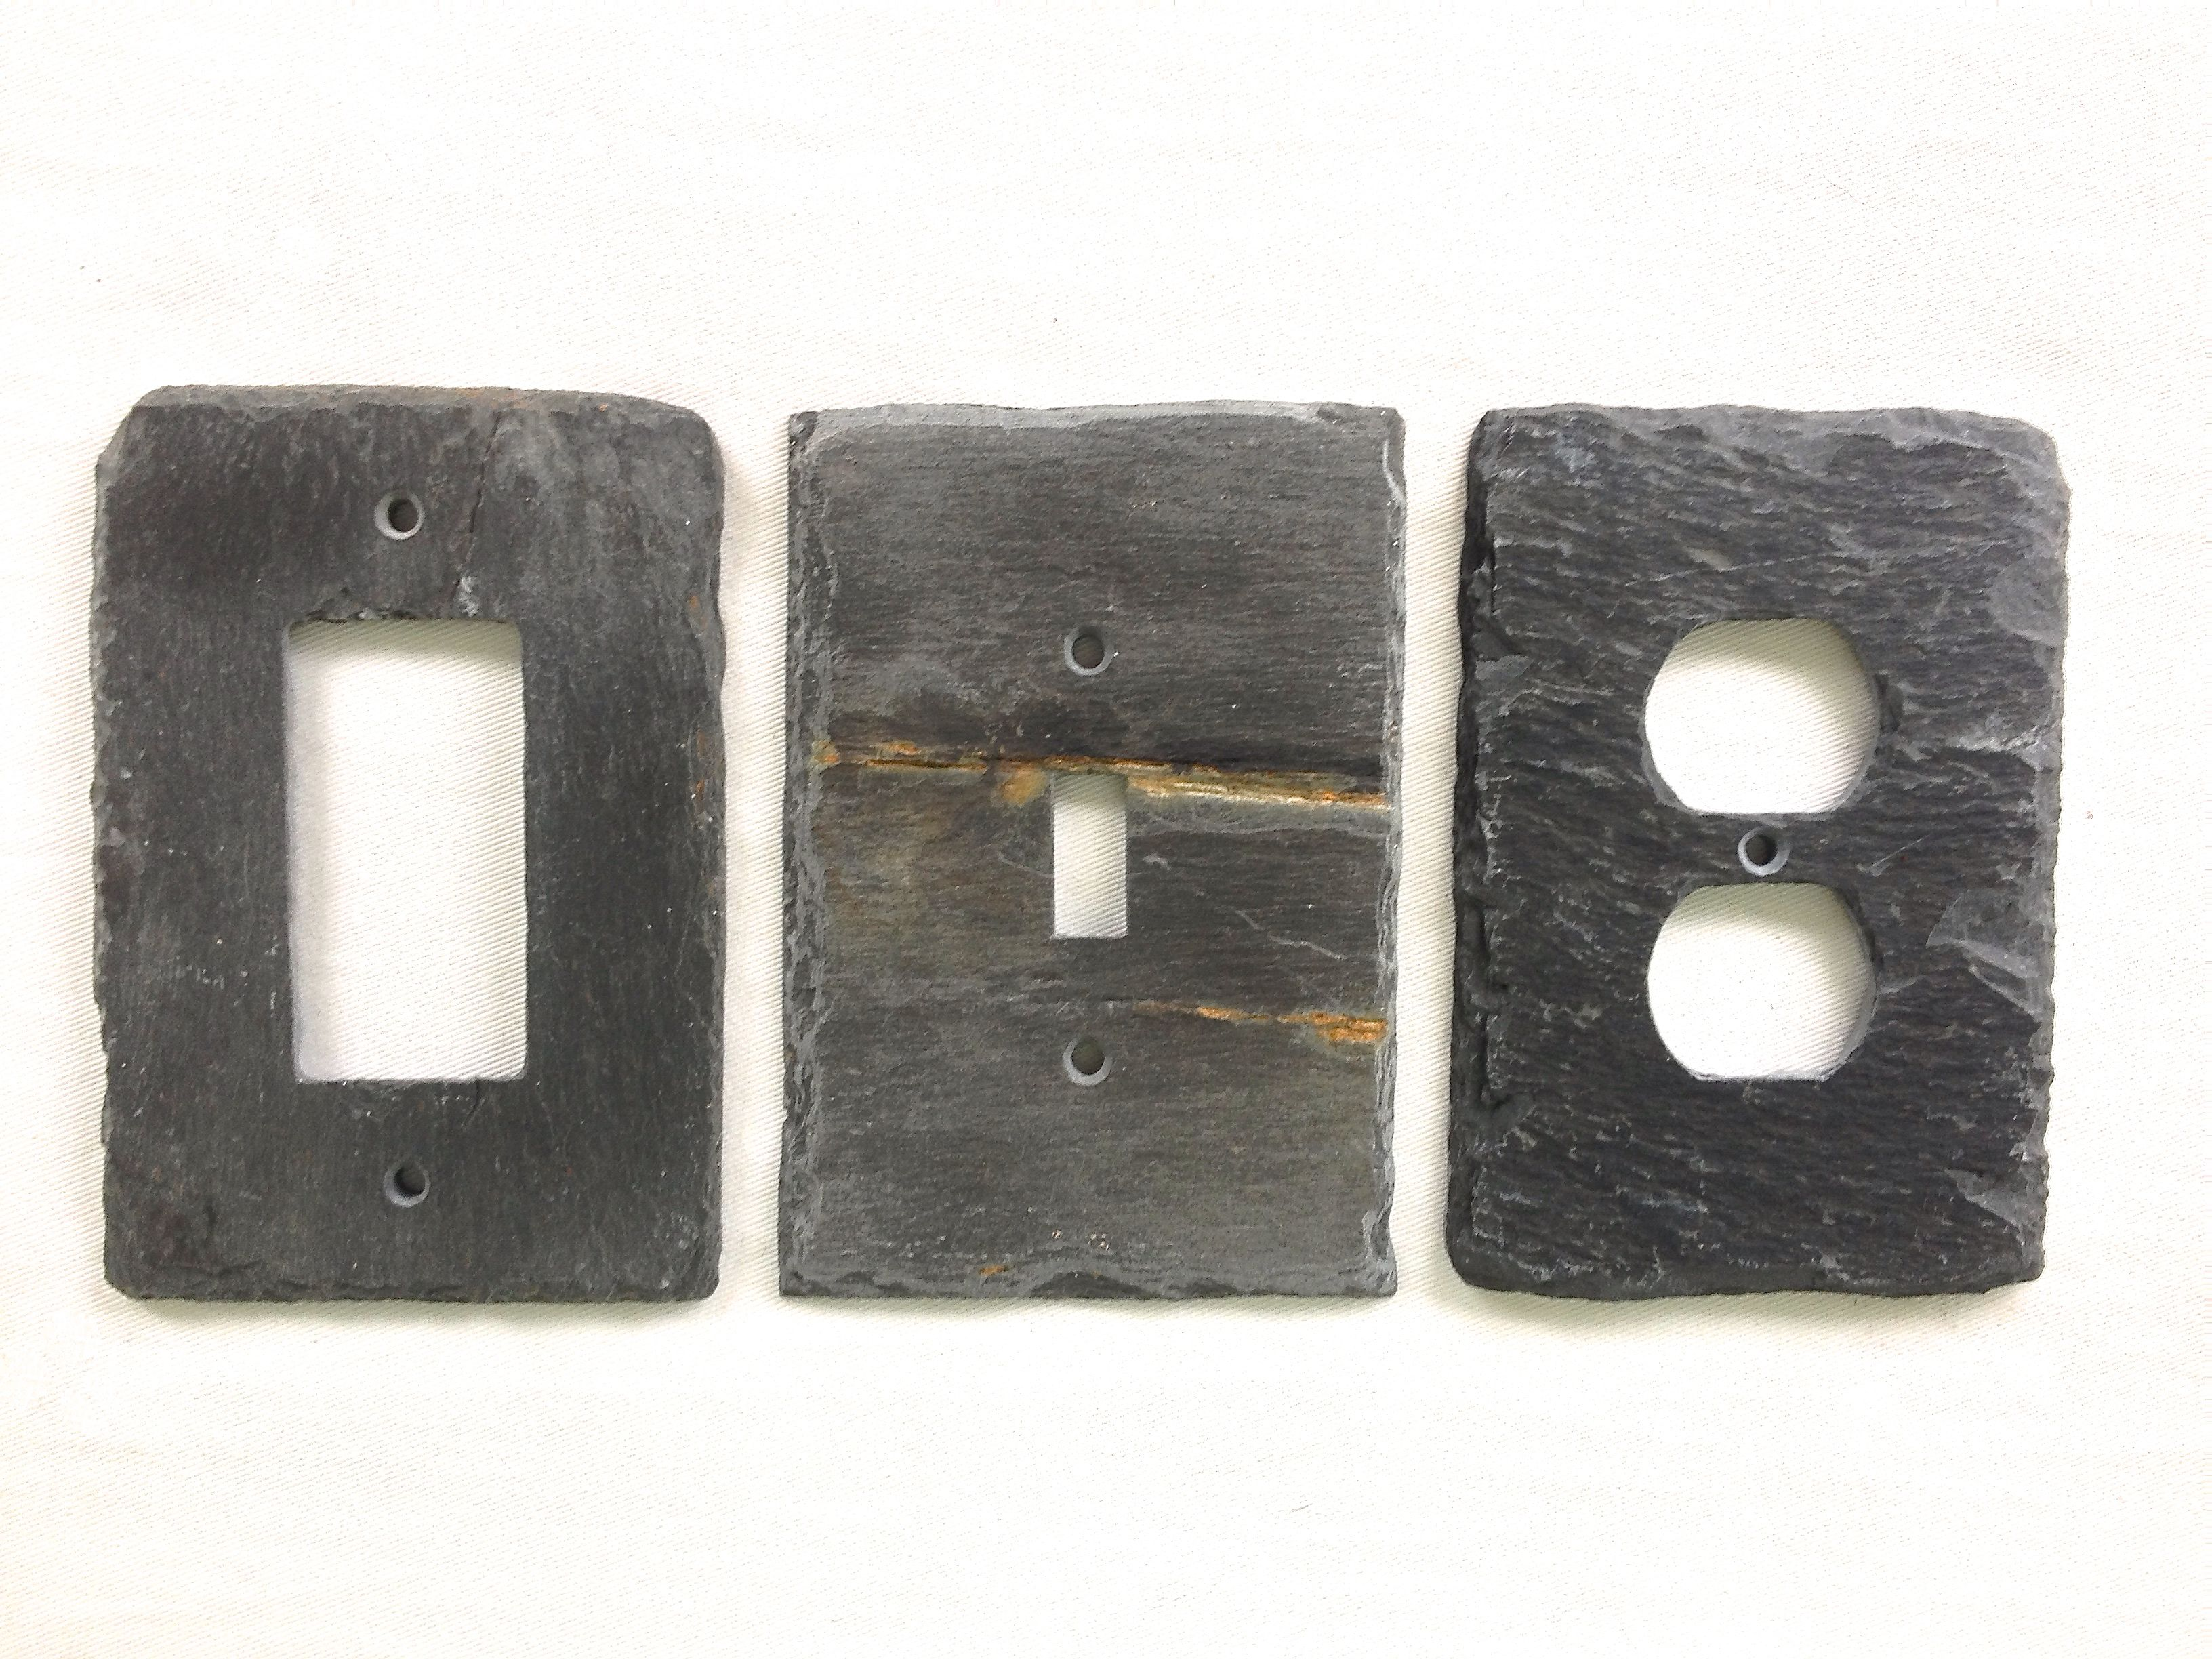 Decorative Light Switch Plates Decorative Light Switch Cover Gfis Rocker And Outlet Slate Wall